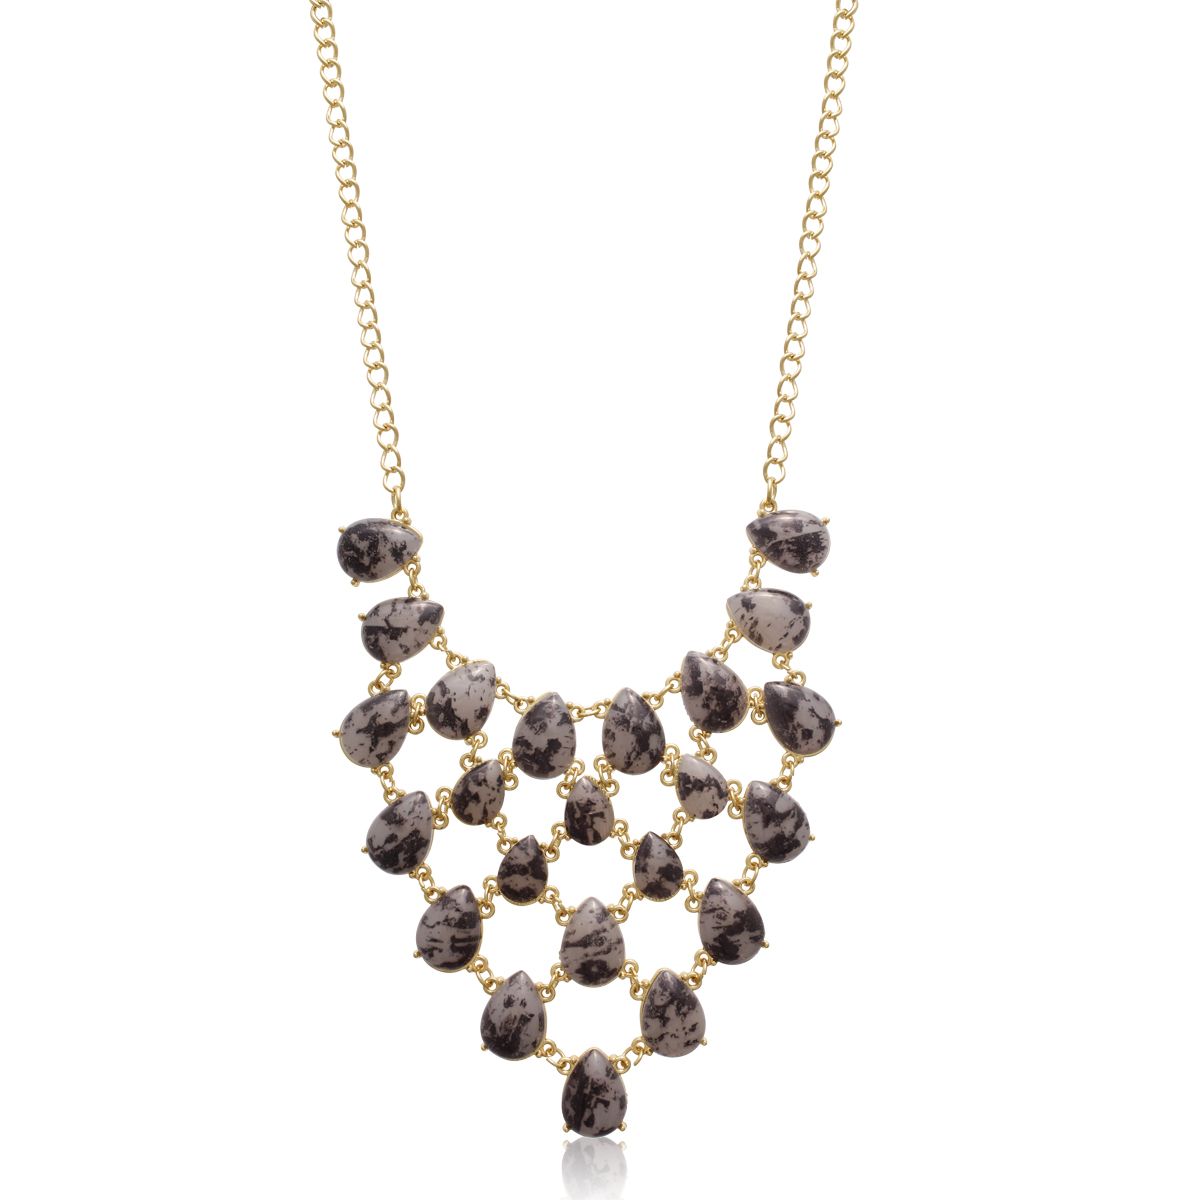 Gold Plated Marble Stone V Bib Necklace - 2 Colors